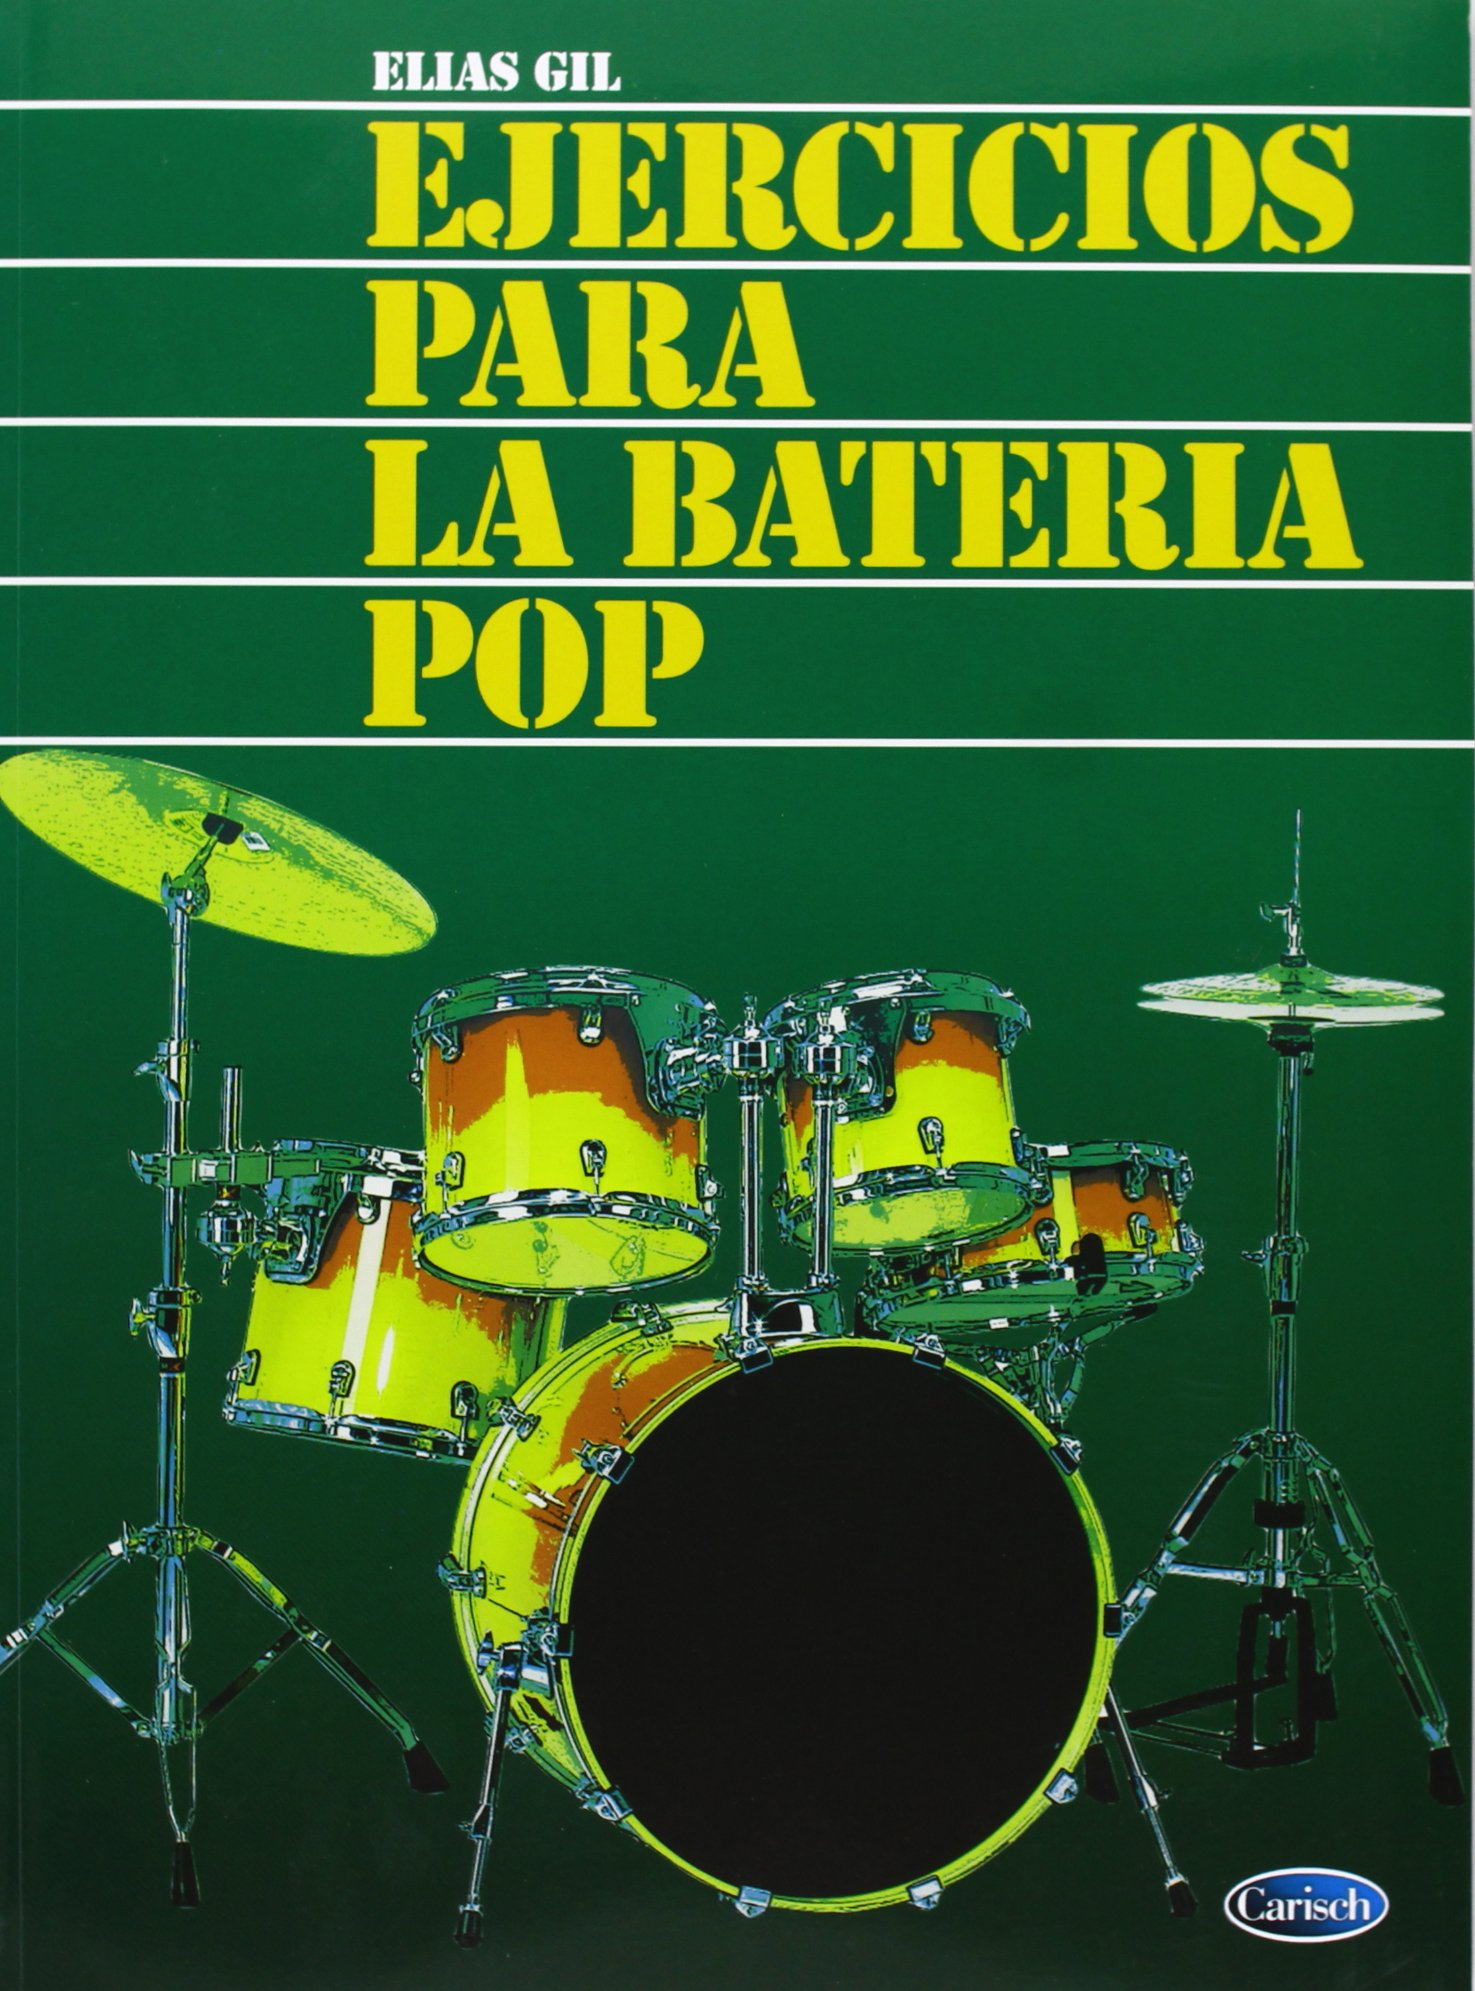 GIL E. - Ejercicios para Bateria Pop: GIL E.: 9788850709588: Amazon.com: Books